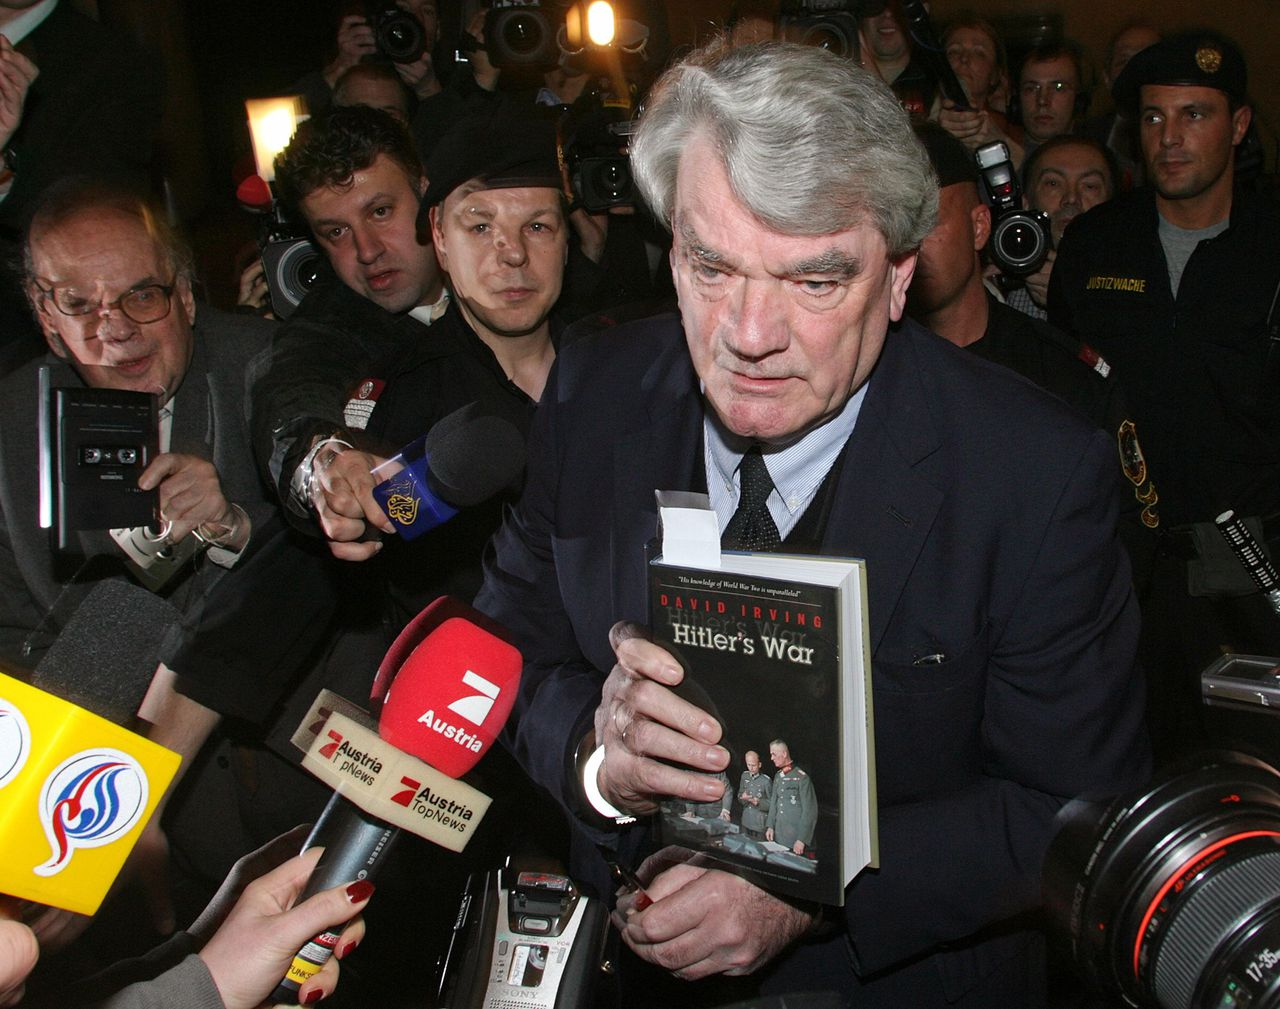 British historian David Irving, facing charges of Holocaust denial in an Austrian court, is handcuffed as he talks to reporters in the courtroom February 20, 2006. Irving, who was arrested when he visited Austria in November to give a speech at a meeting of a right-wing student fraternity, said he had changed his views and he did not question anymore that millions of Jews died in World War Two. REUTERS/Heinz-Peter Bader